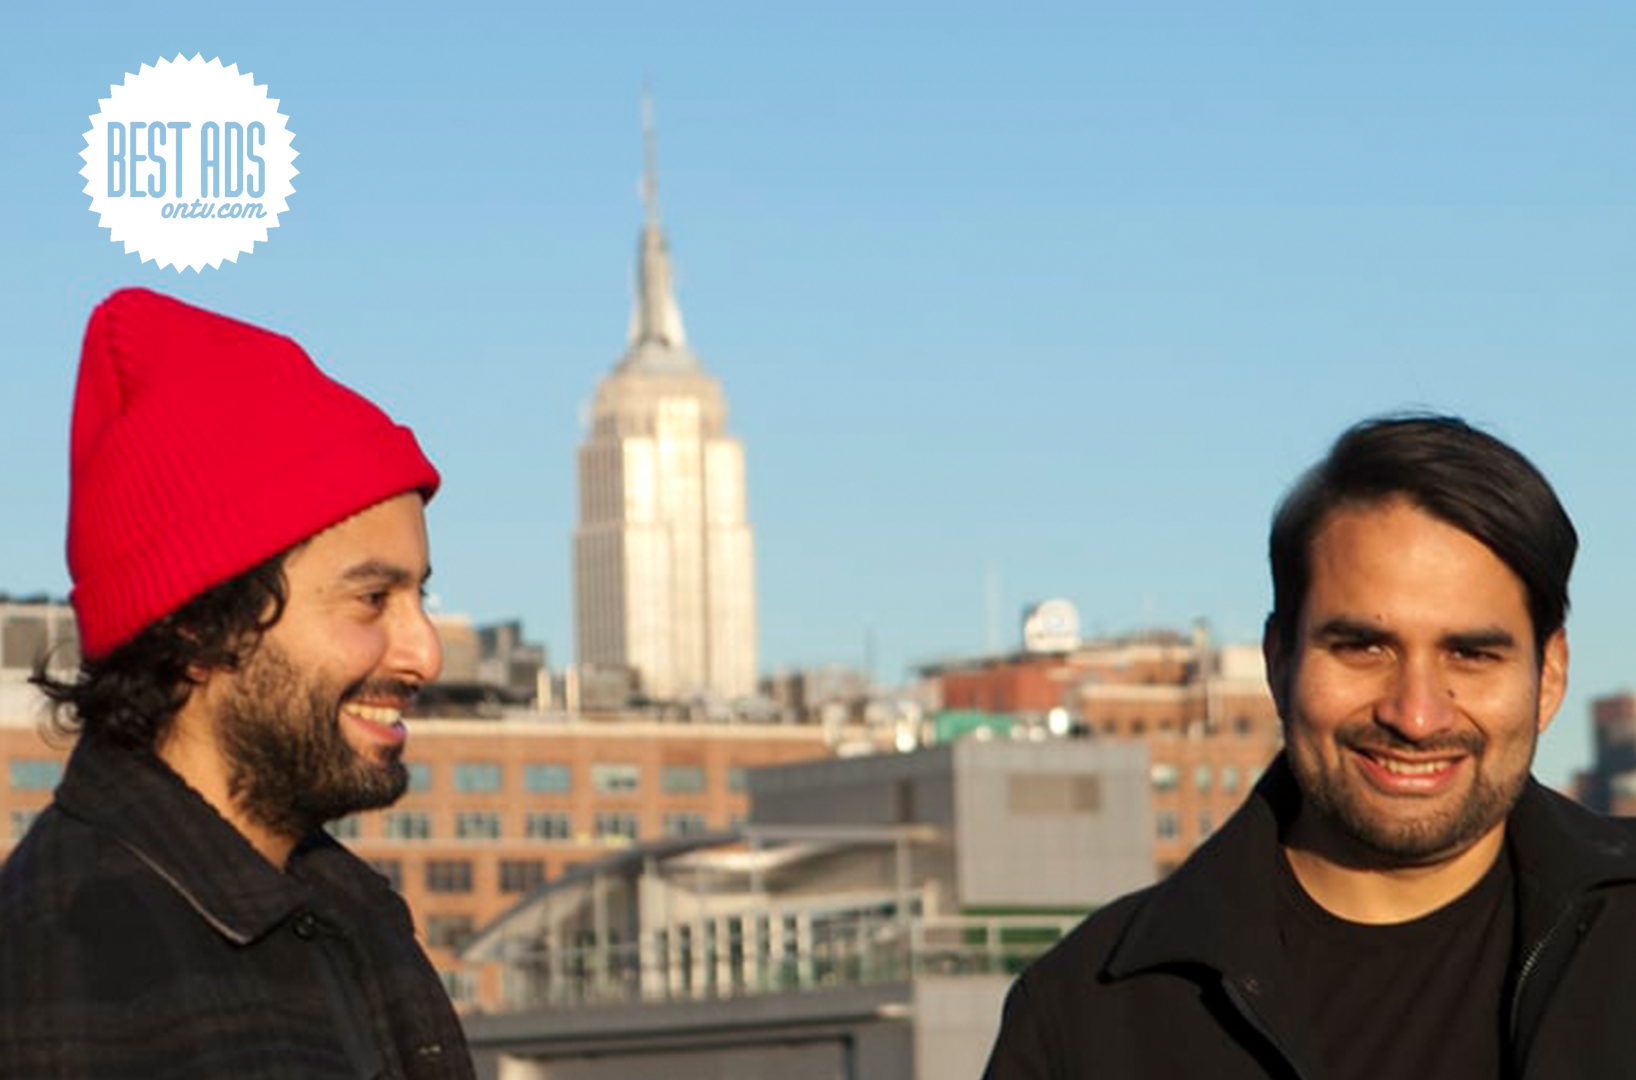 Guest Judges: Gian Lanfranco & Rolando Cordova, McCann New York - They have spent the last 10 years living around the globe. Originally from Lima, Peru, Gian and Rolando are considered the most international Peruvian creatives.